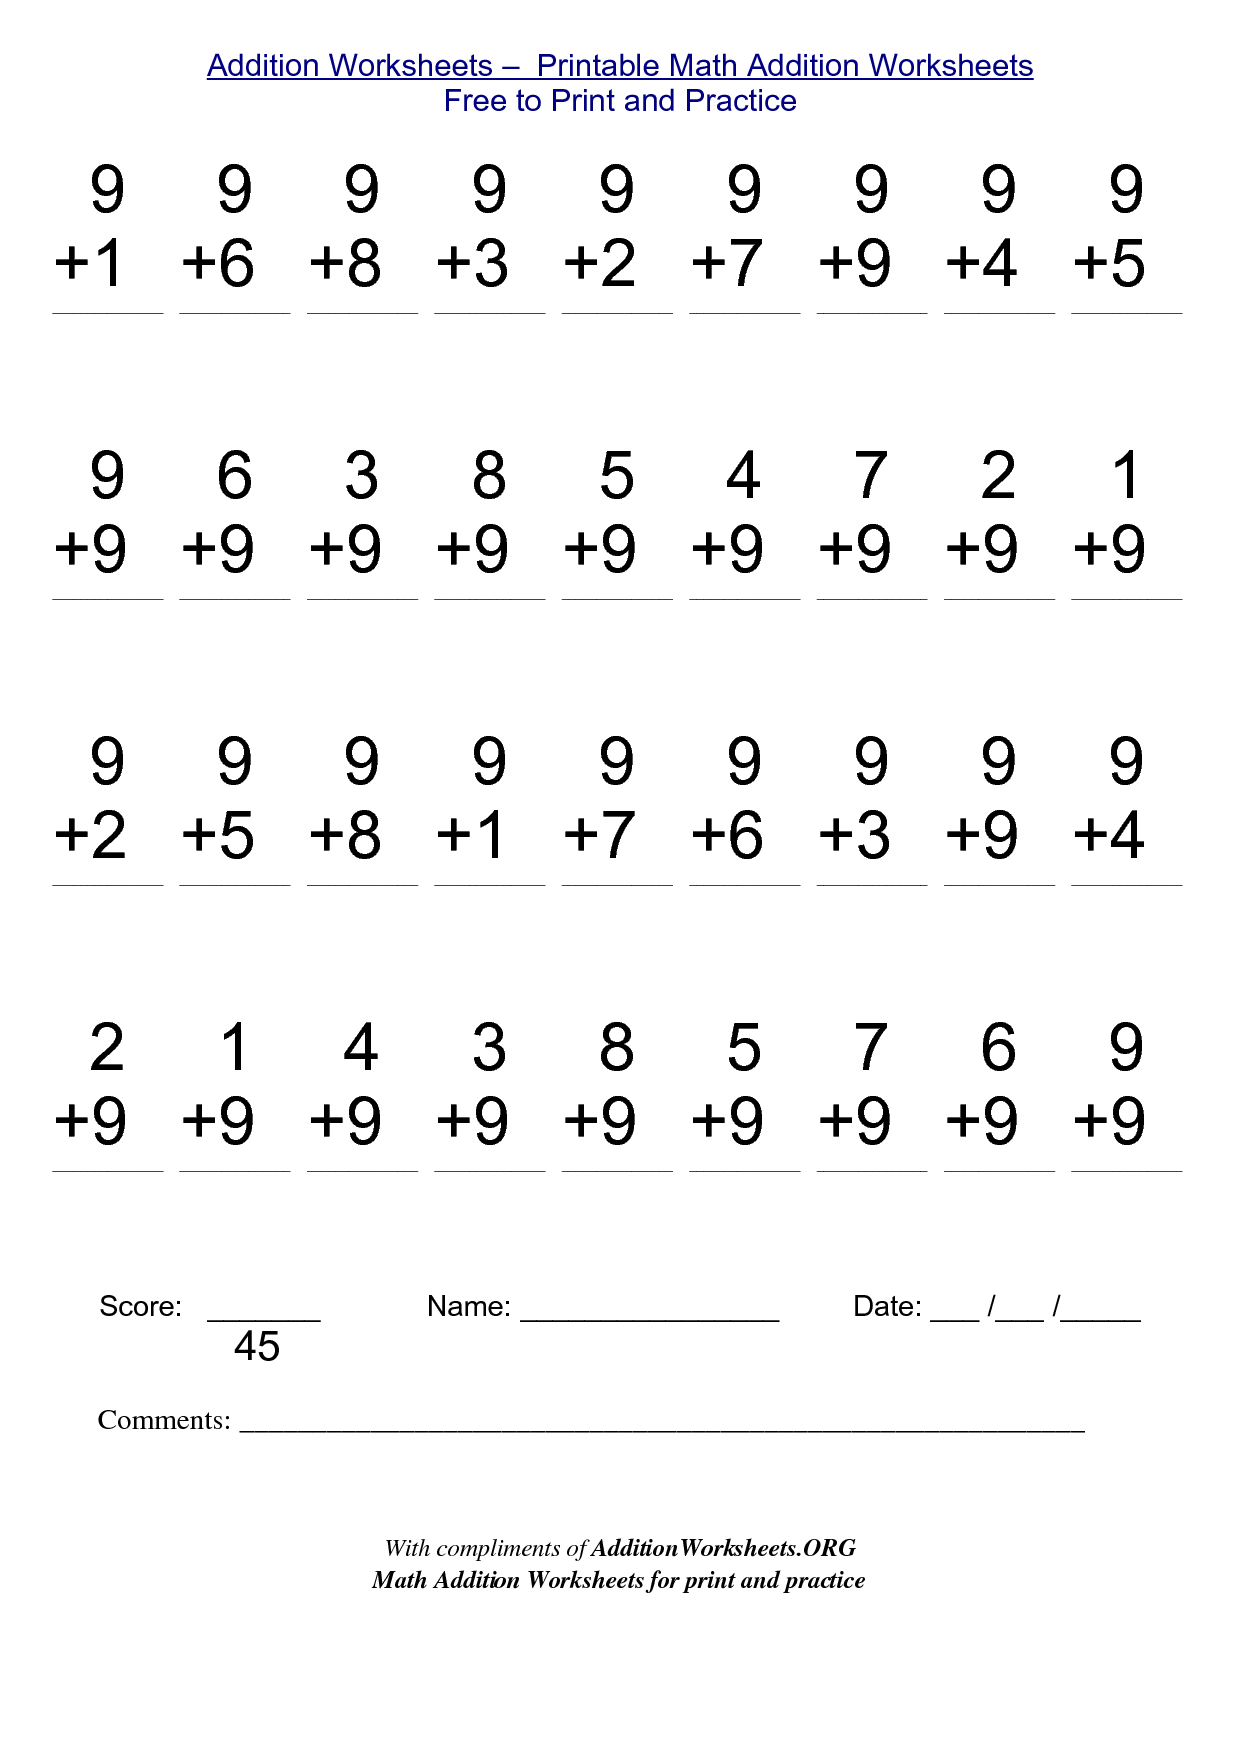 Math Worksheets for Free to Print Alot ME – Second Grade Printable Math Worksheets